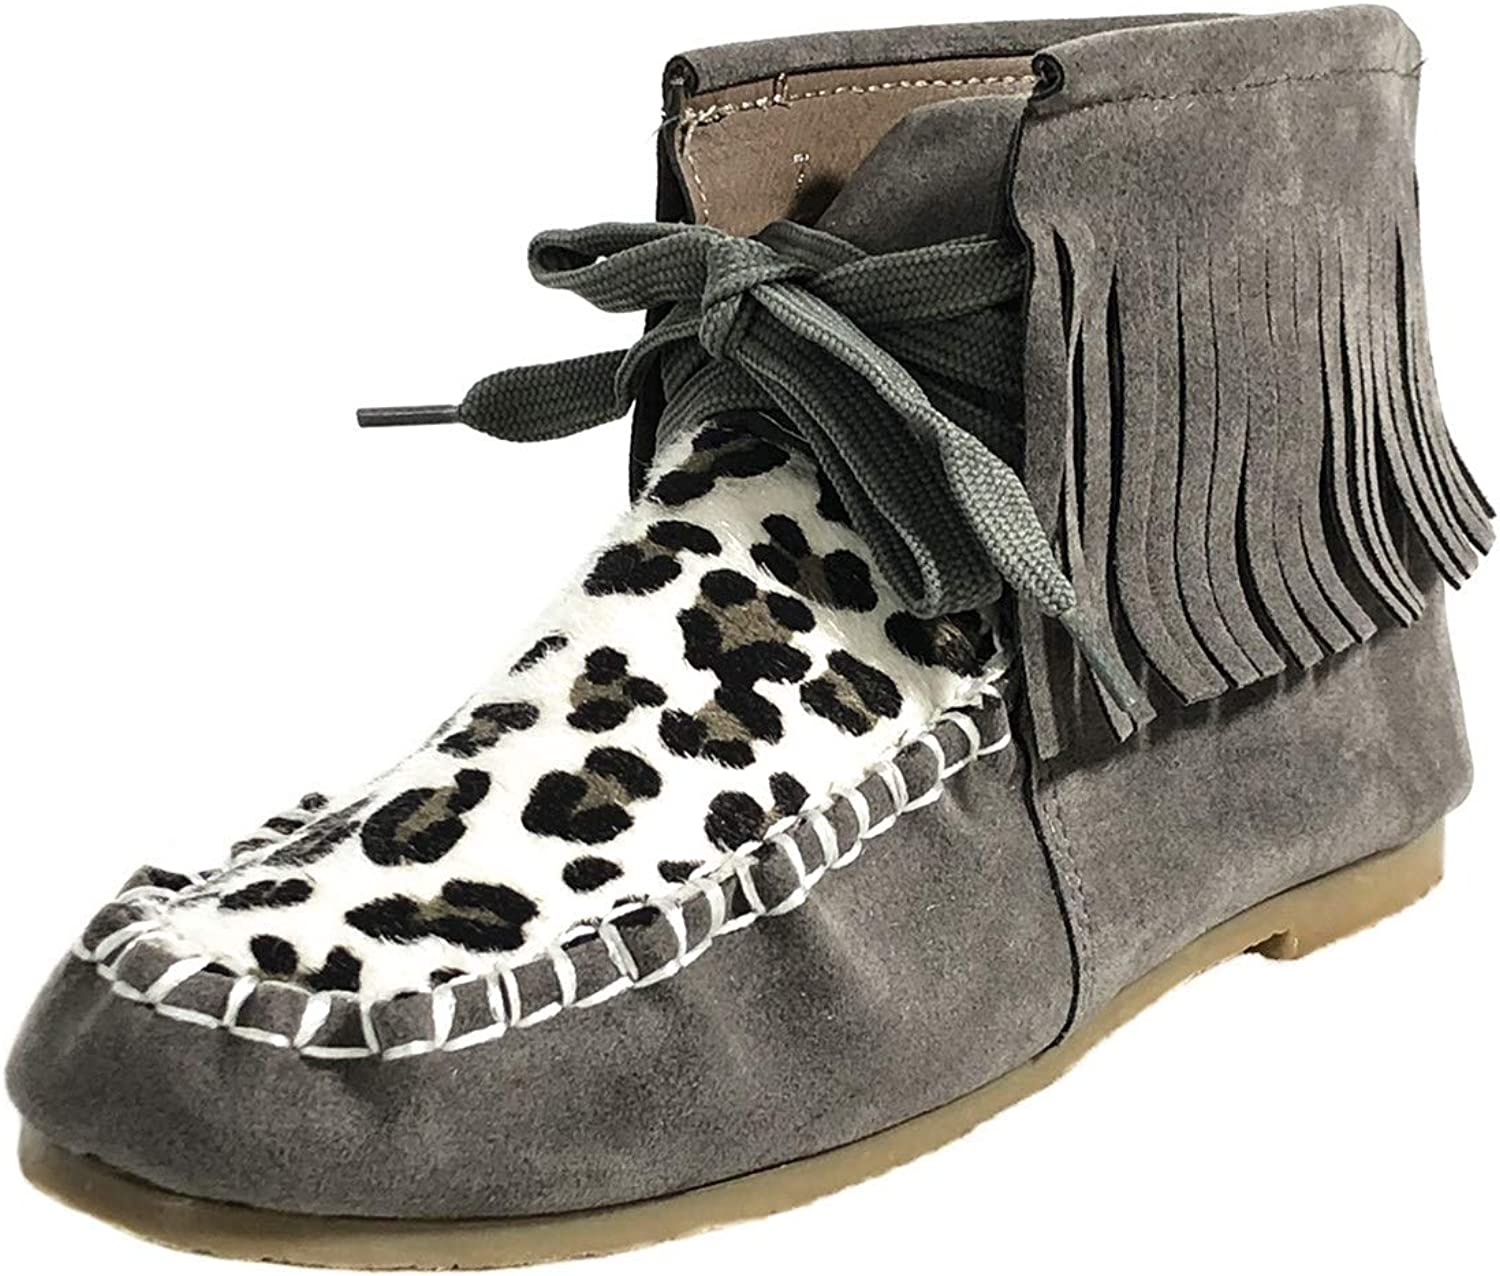 MONOBLANKS Women Leopard Boots with Tassel,Women Fashion Casual Short Boots